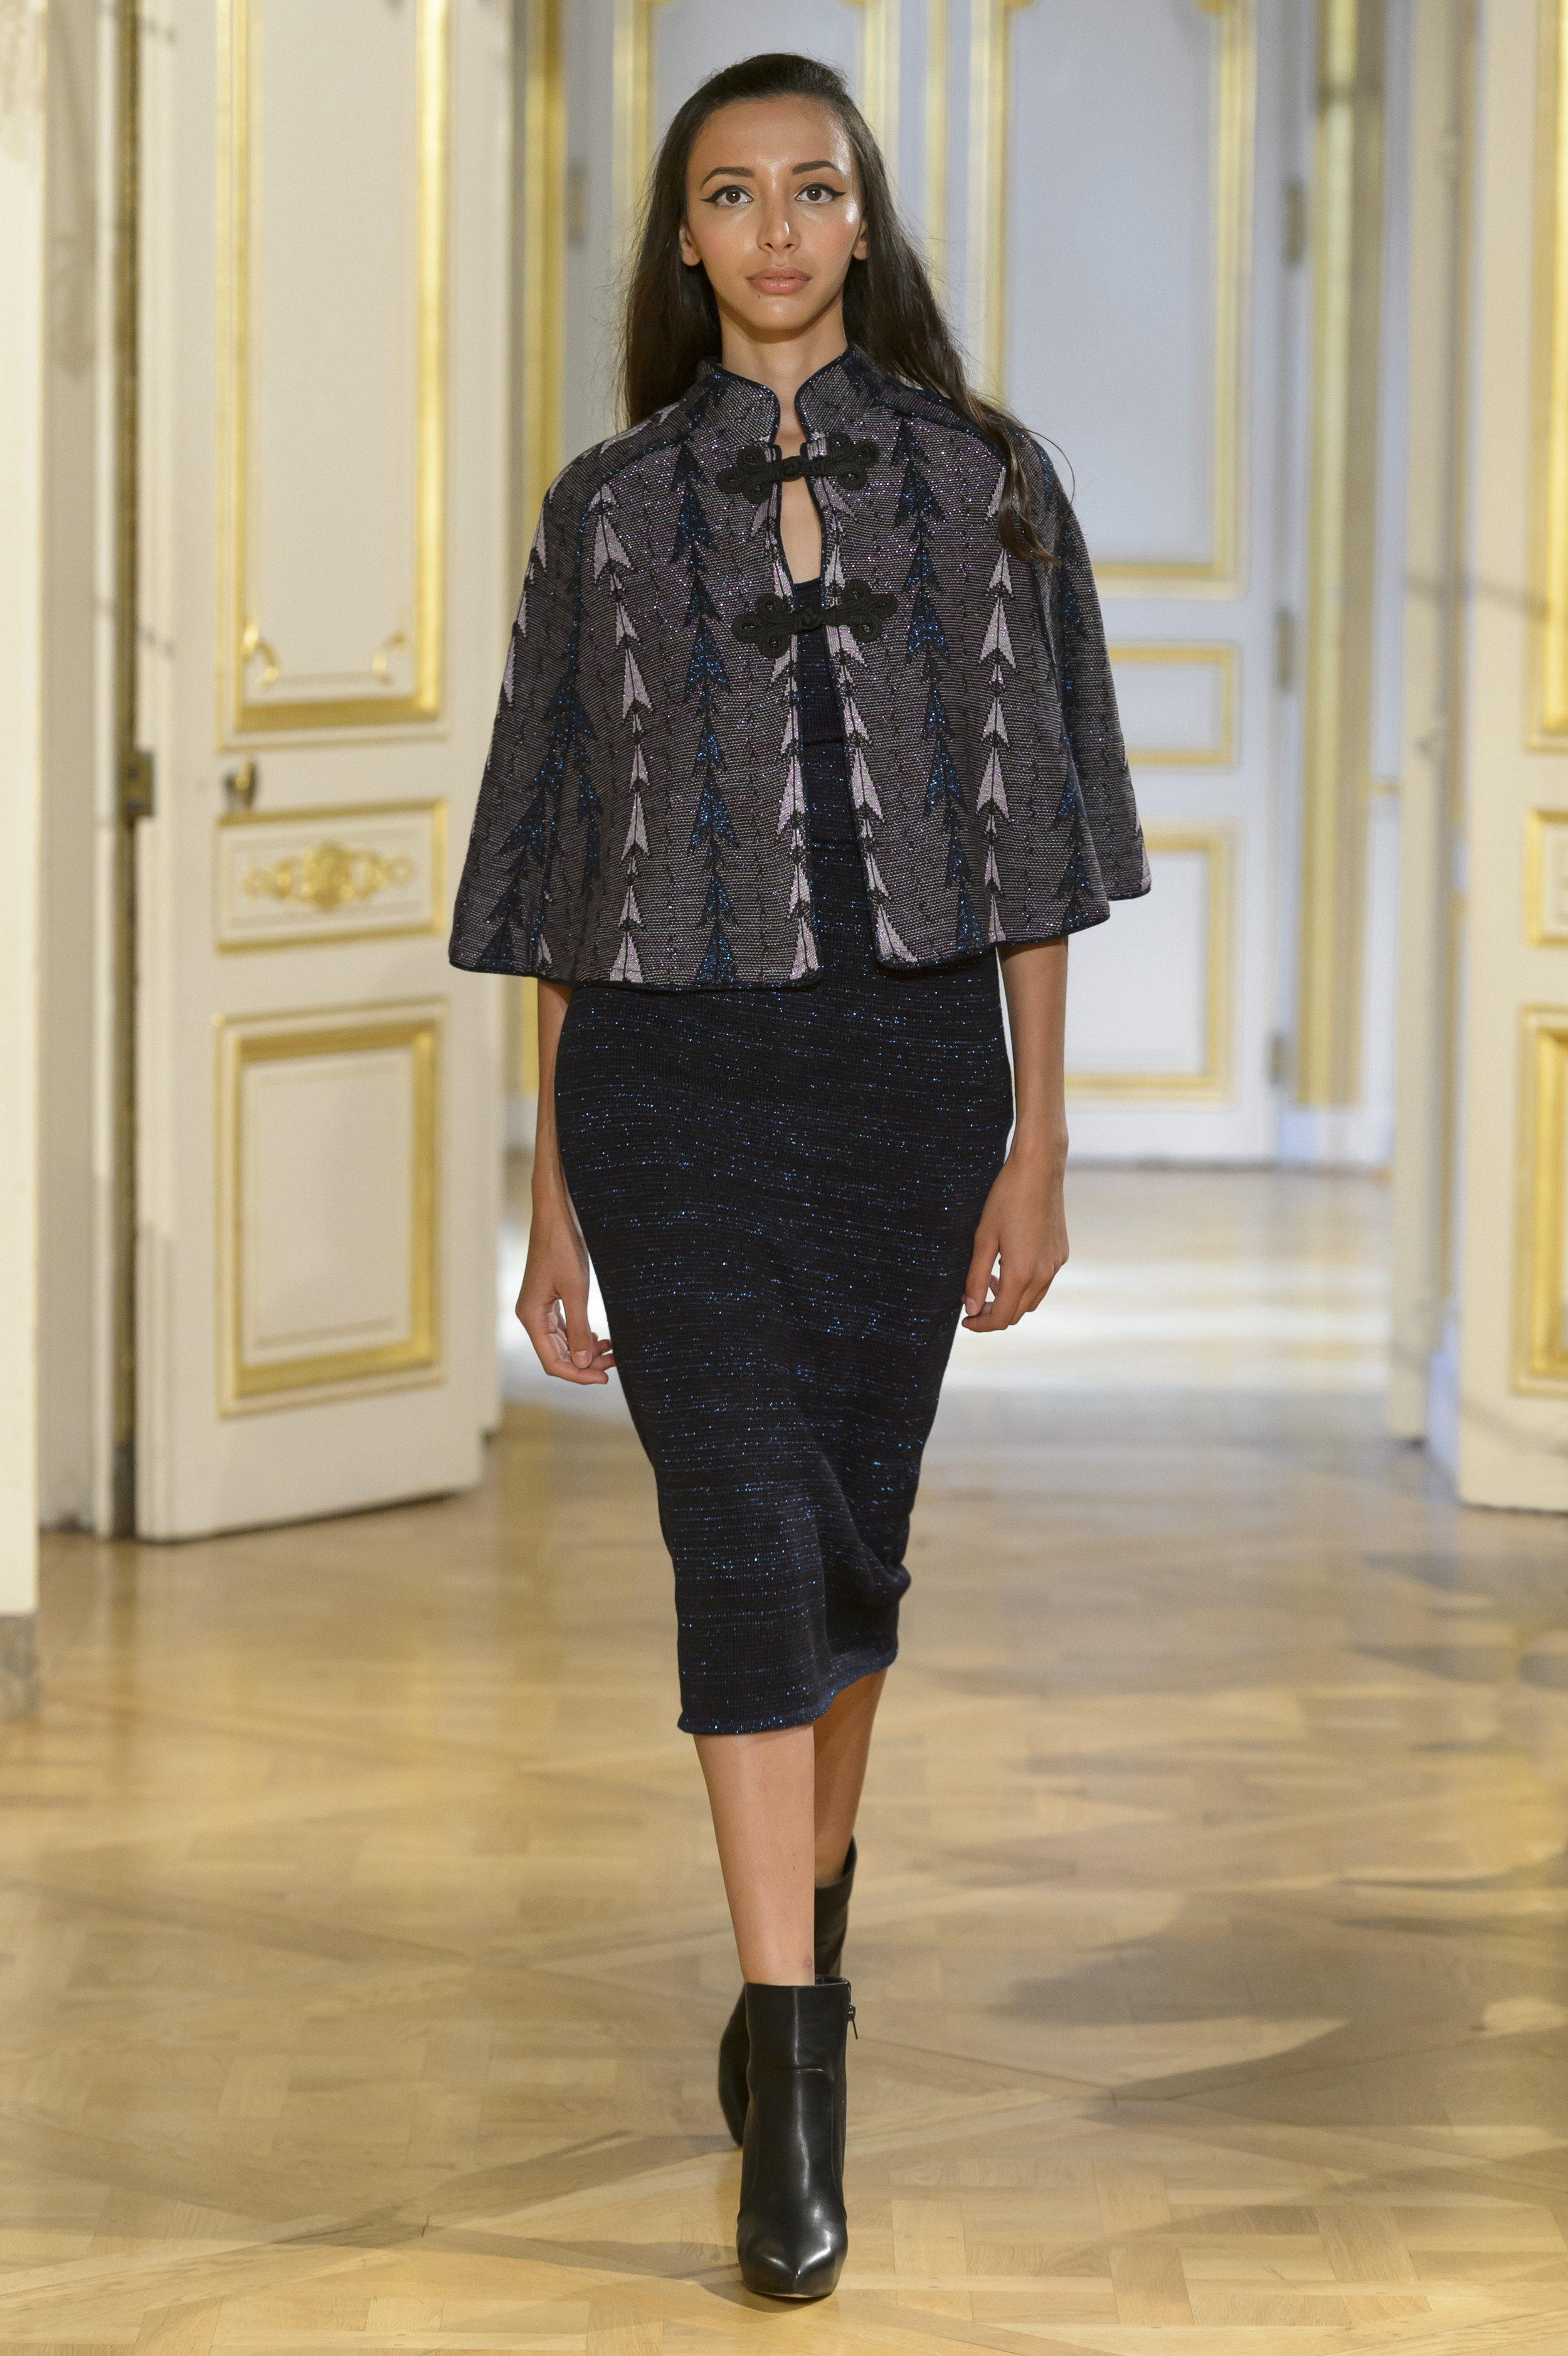 MARIA ARISTIDOU photos defile : fashion show %22Serendipity%22 couture collection automne hiver : fall winter 2018 2019 PFW - © Imaxtree 7.jpg